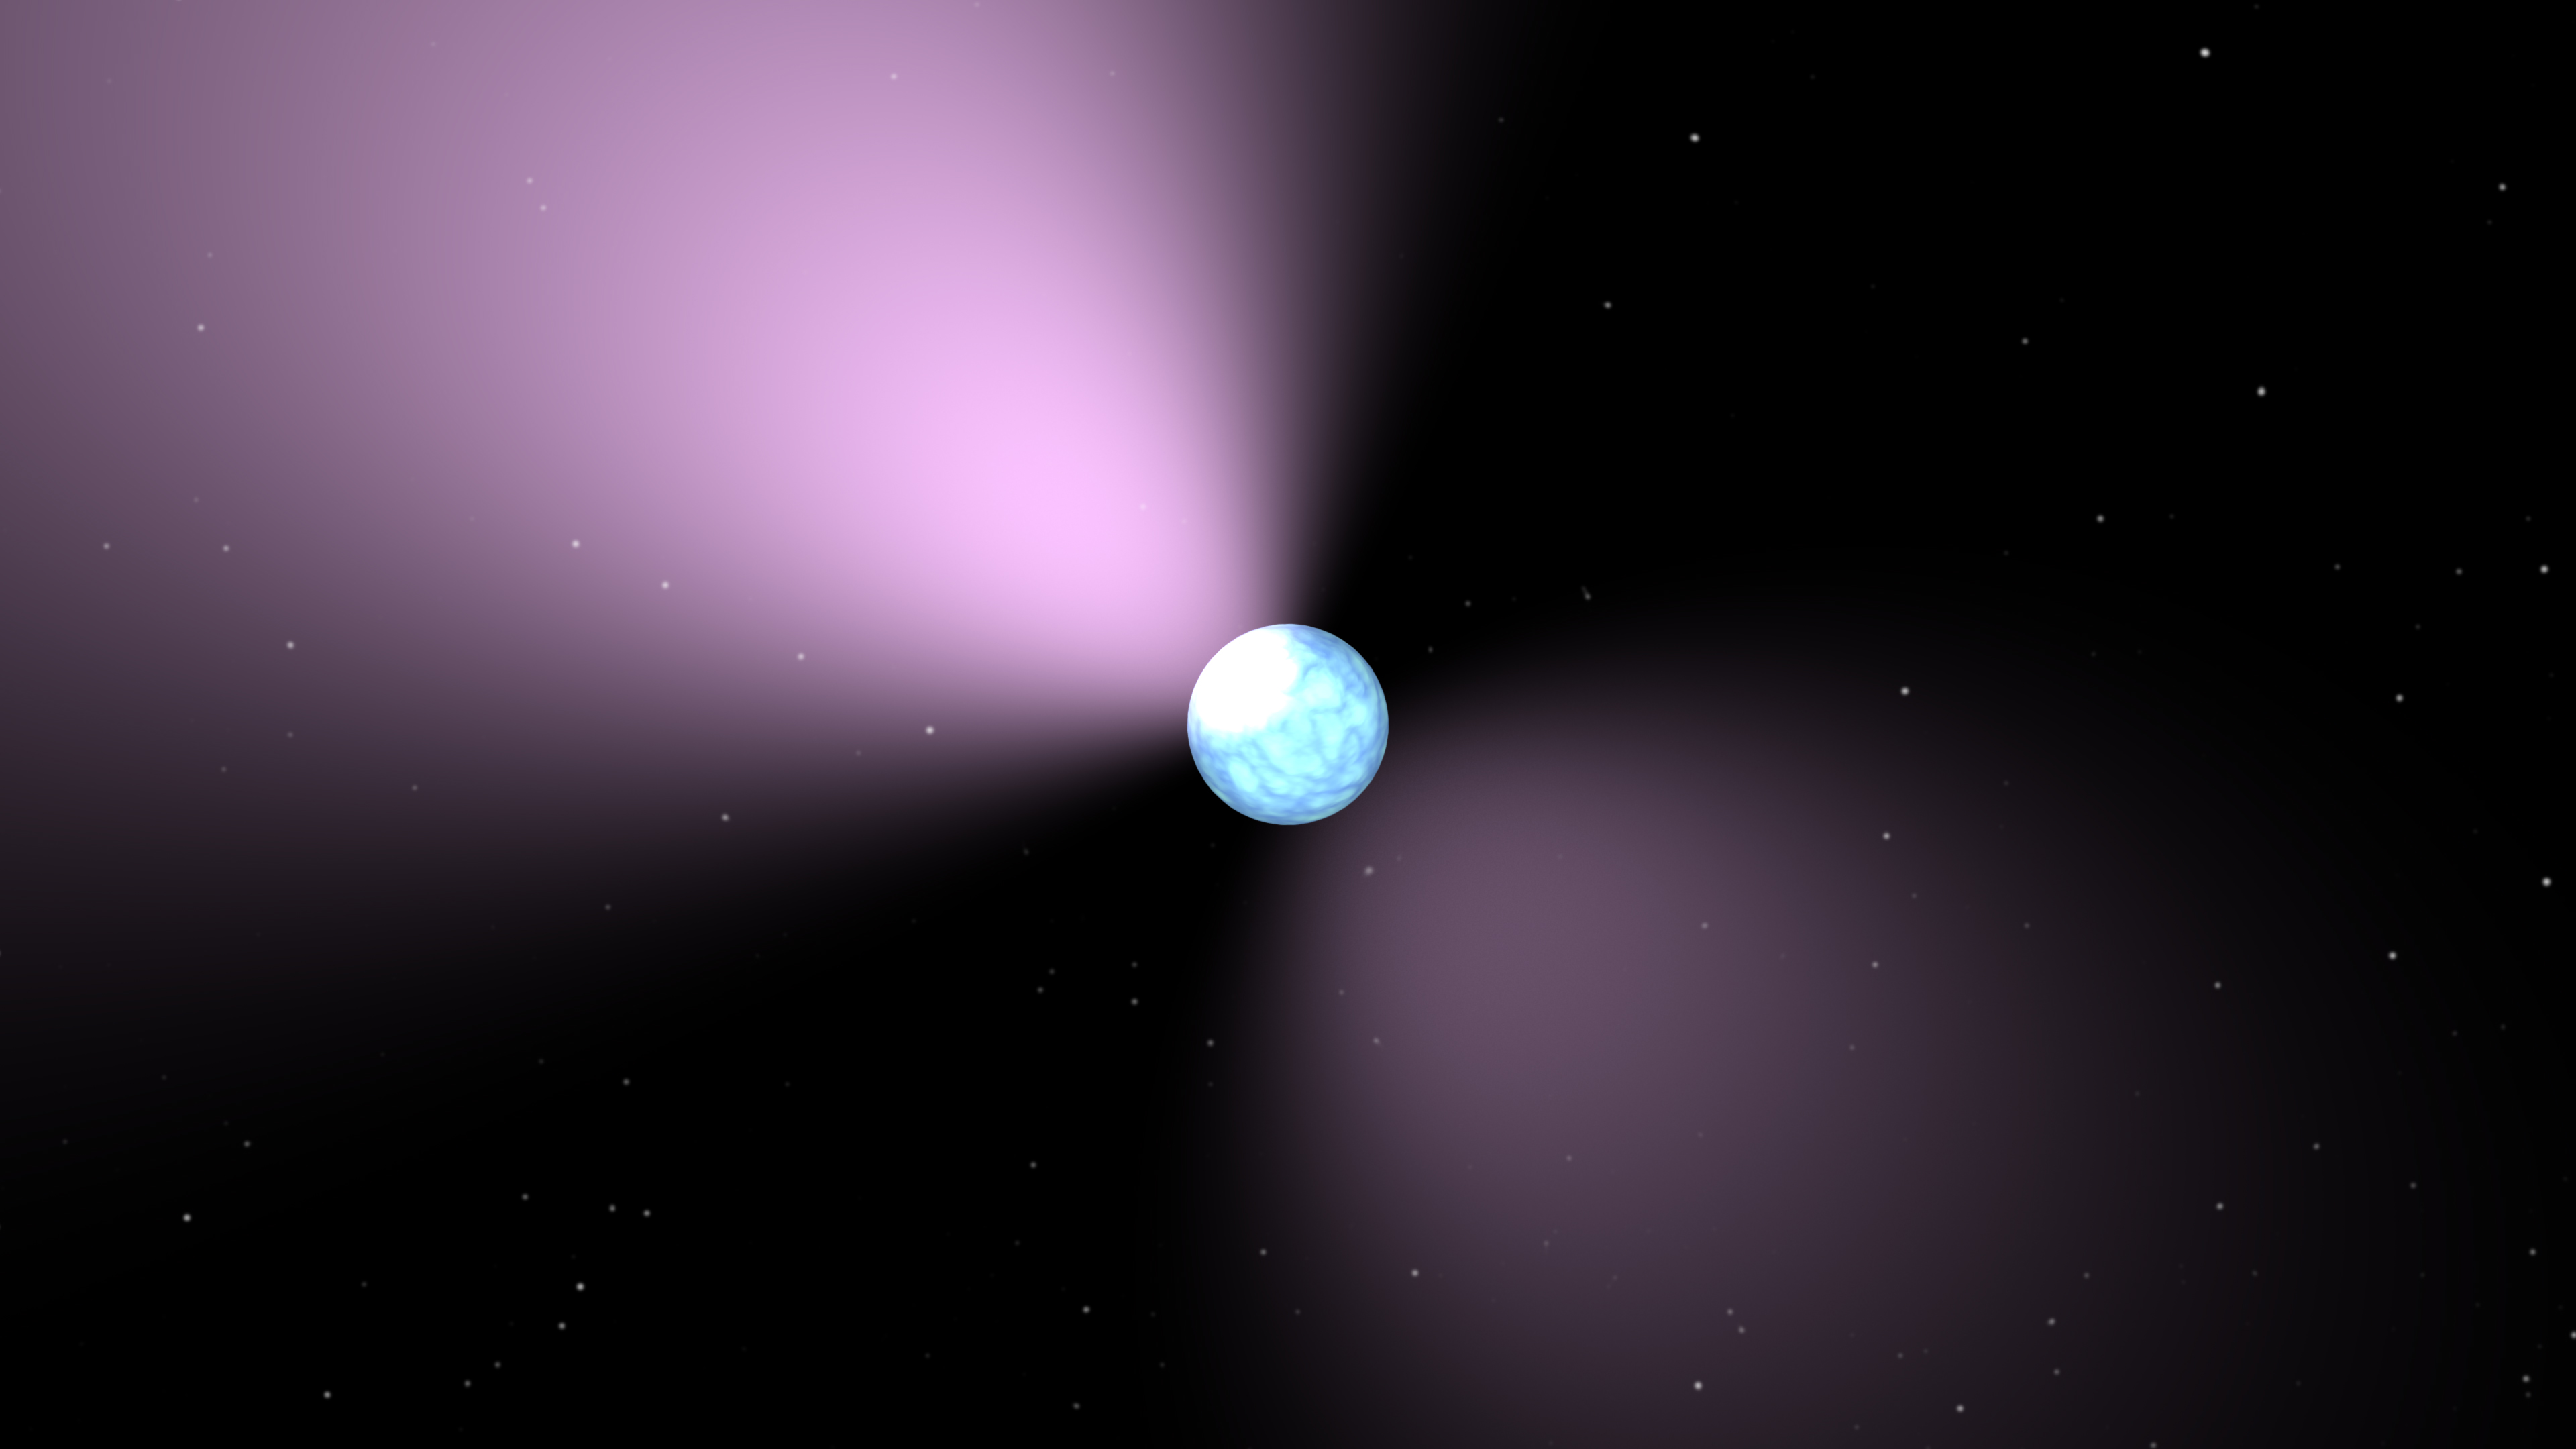 neutron star nasa - photo #6